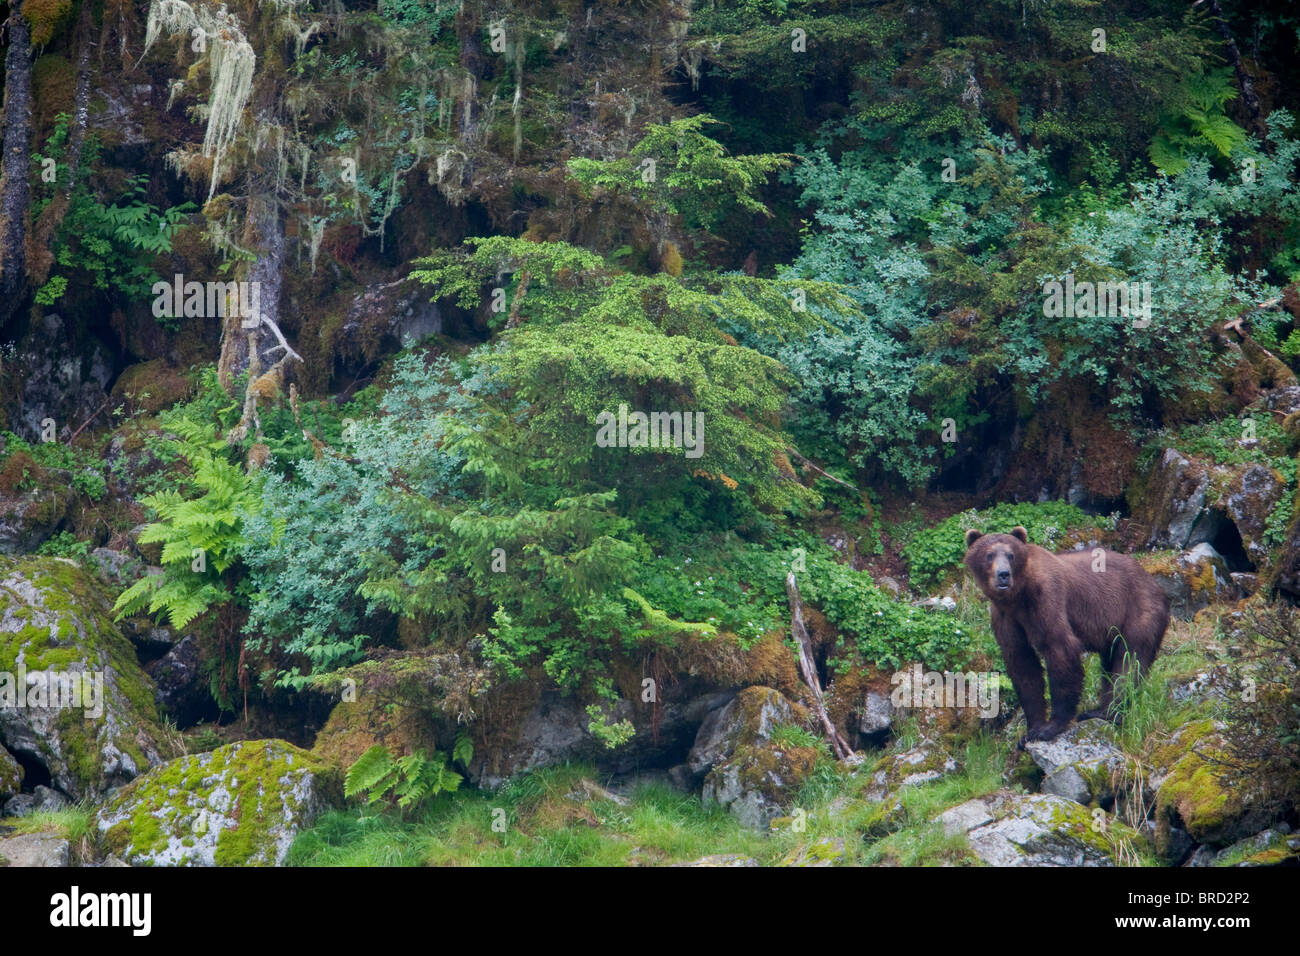 View of a Brown bear standing in lush rainforest, Prince William Sound, Chugach Mountains, Chugach National Forest, - Stock Image